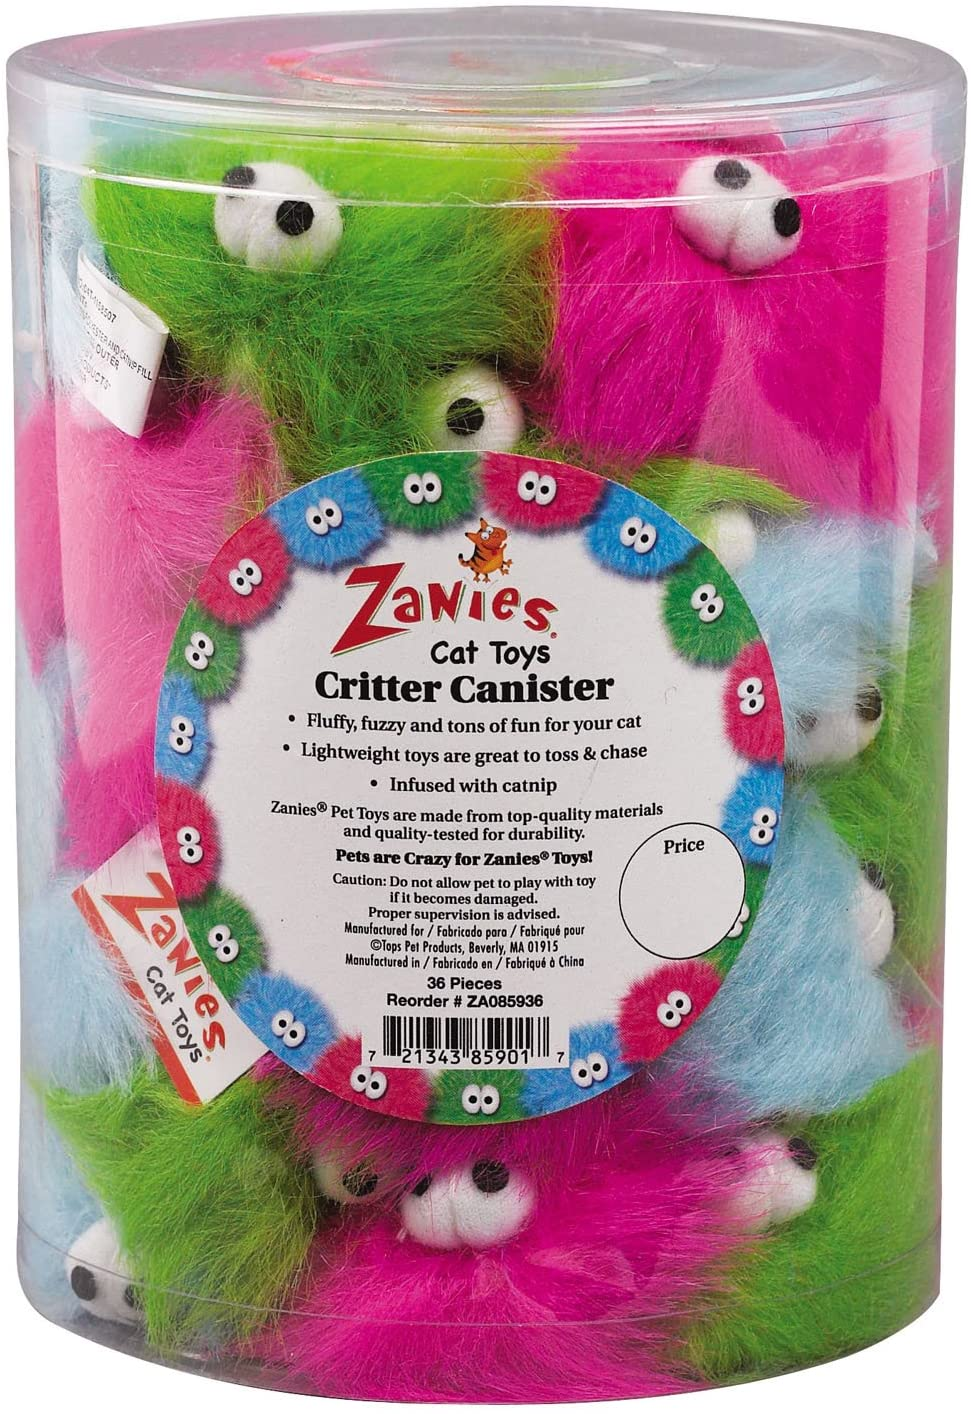 Zanies Critters Cat Toy Image